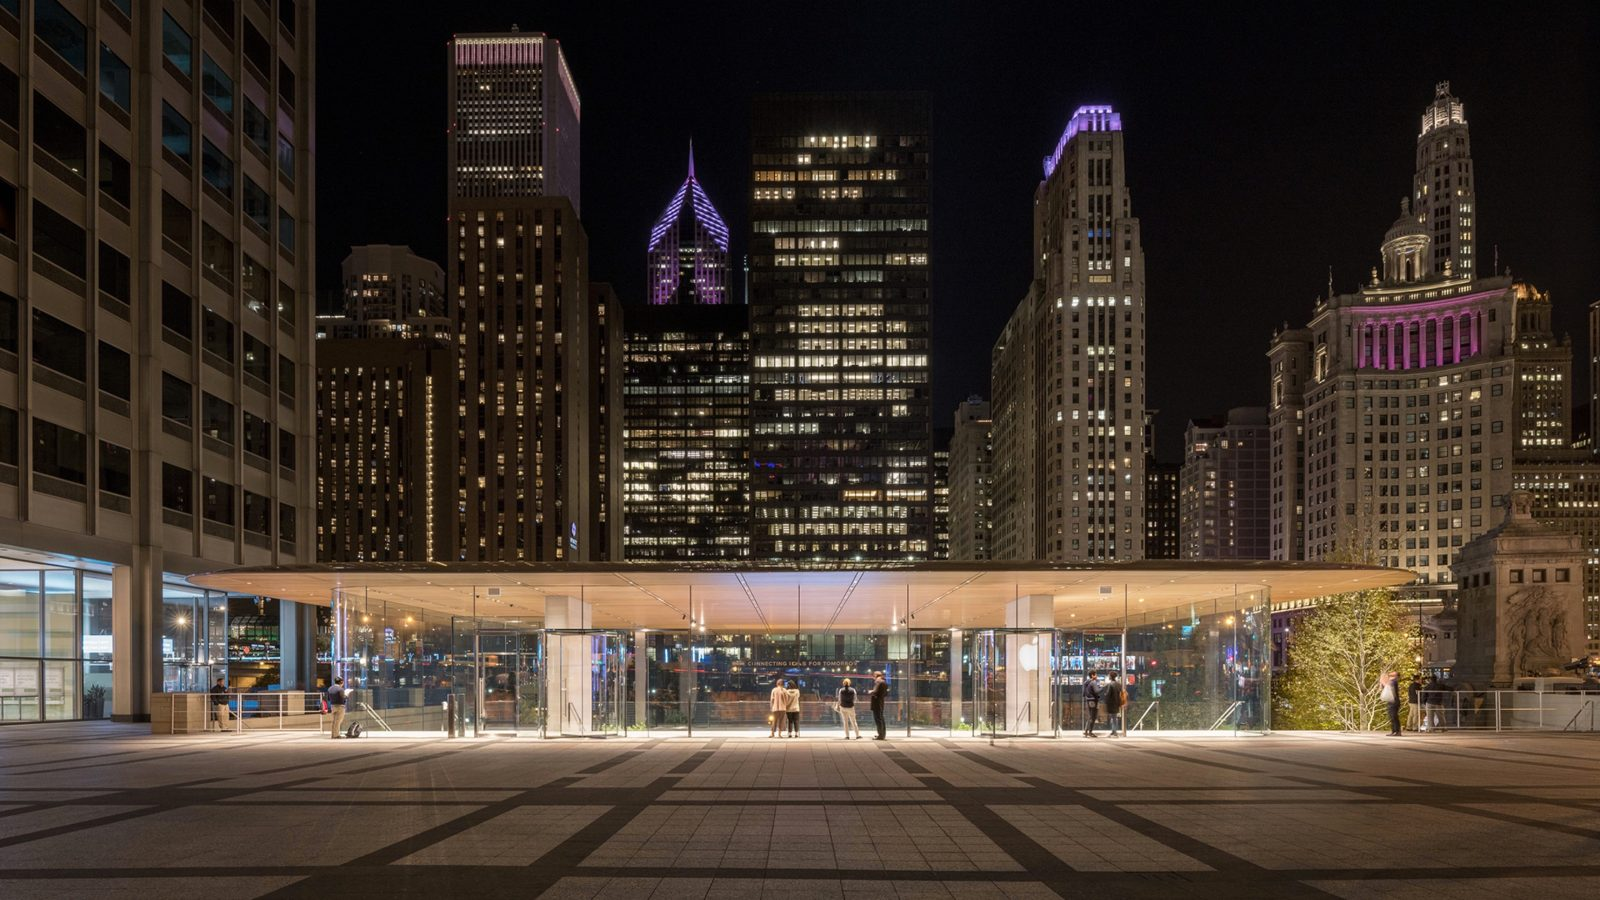 Apples michigan avenue store recognized for innovative lighting design at iald awards